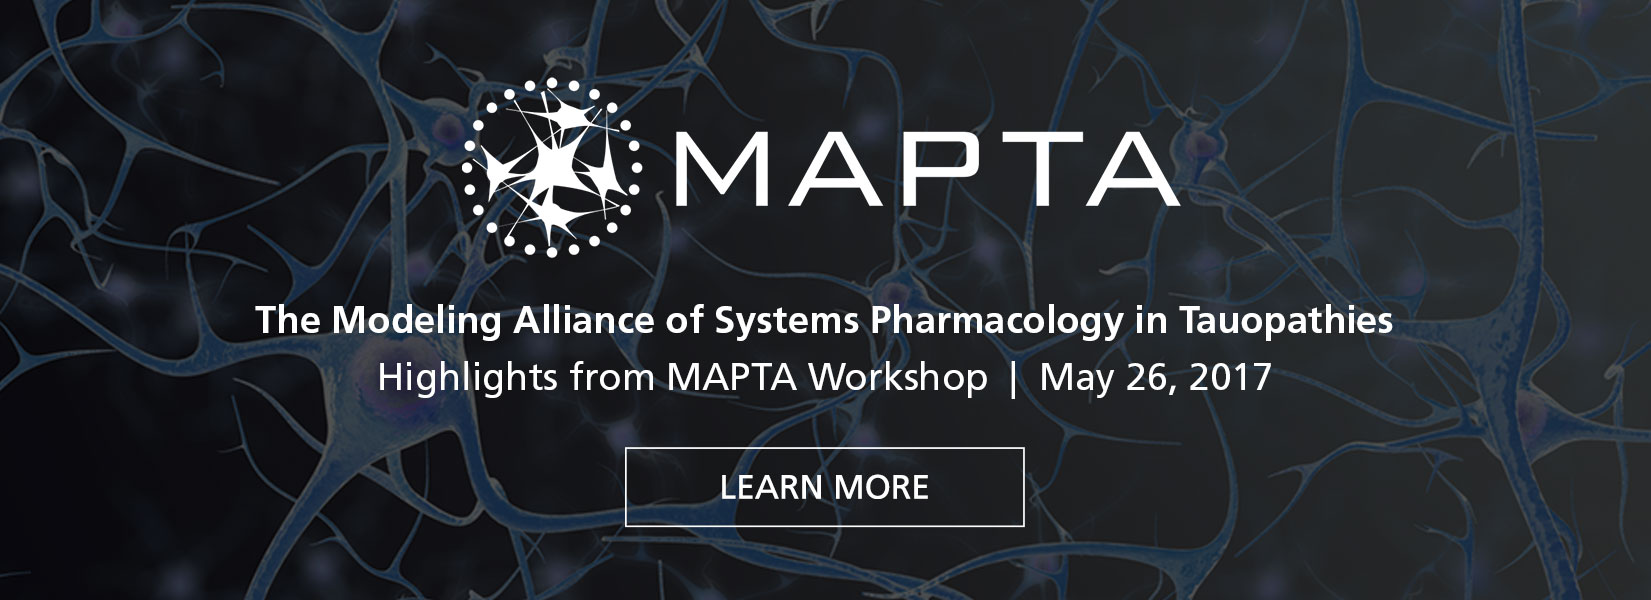 MAPTA Workshop